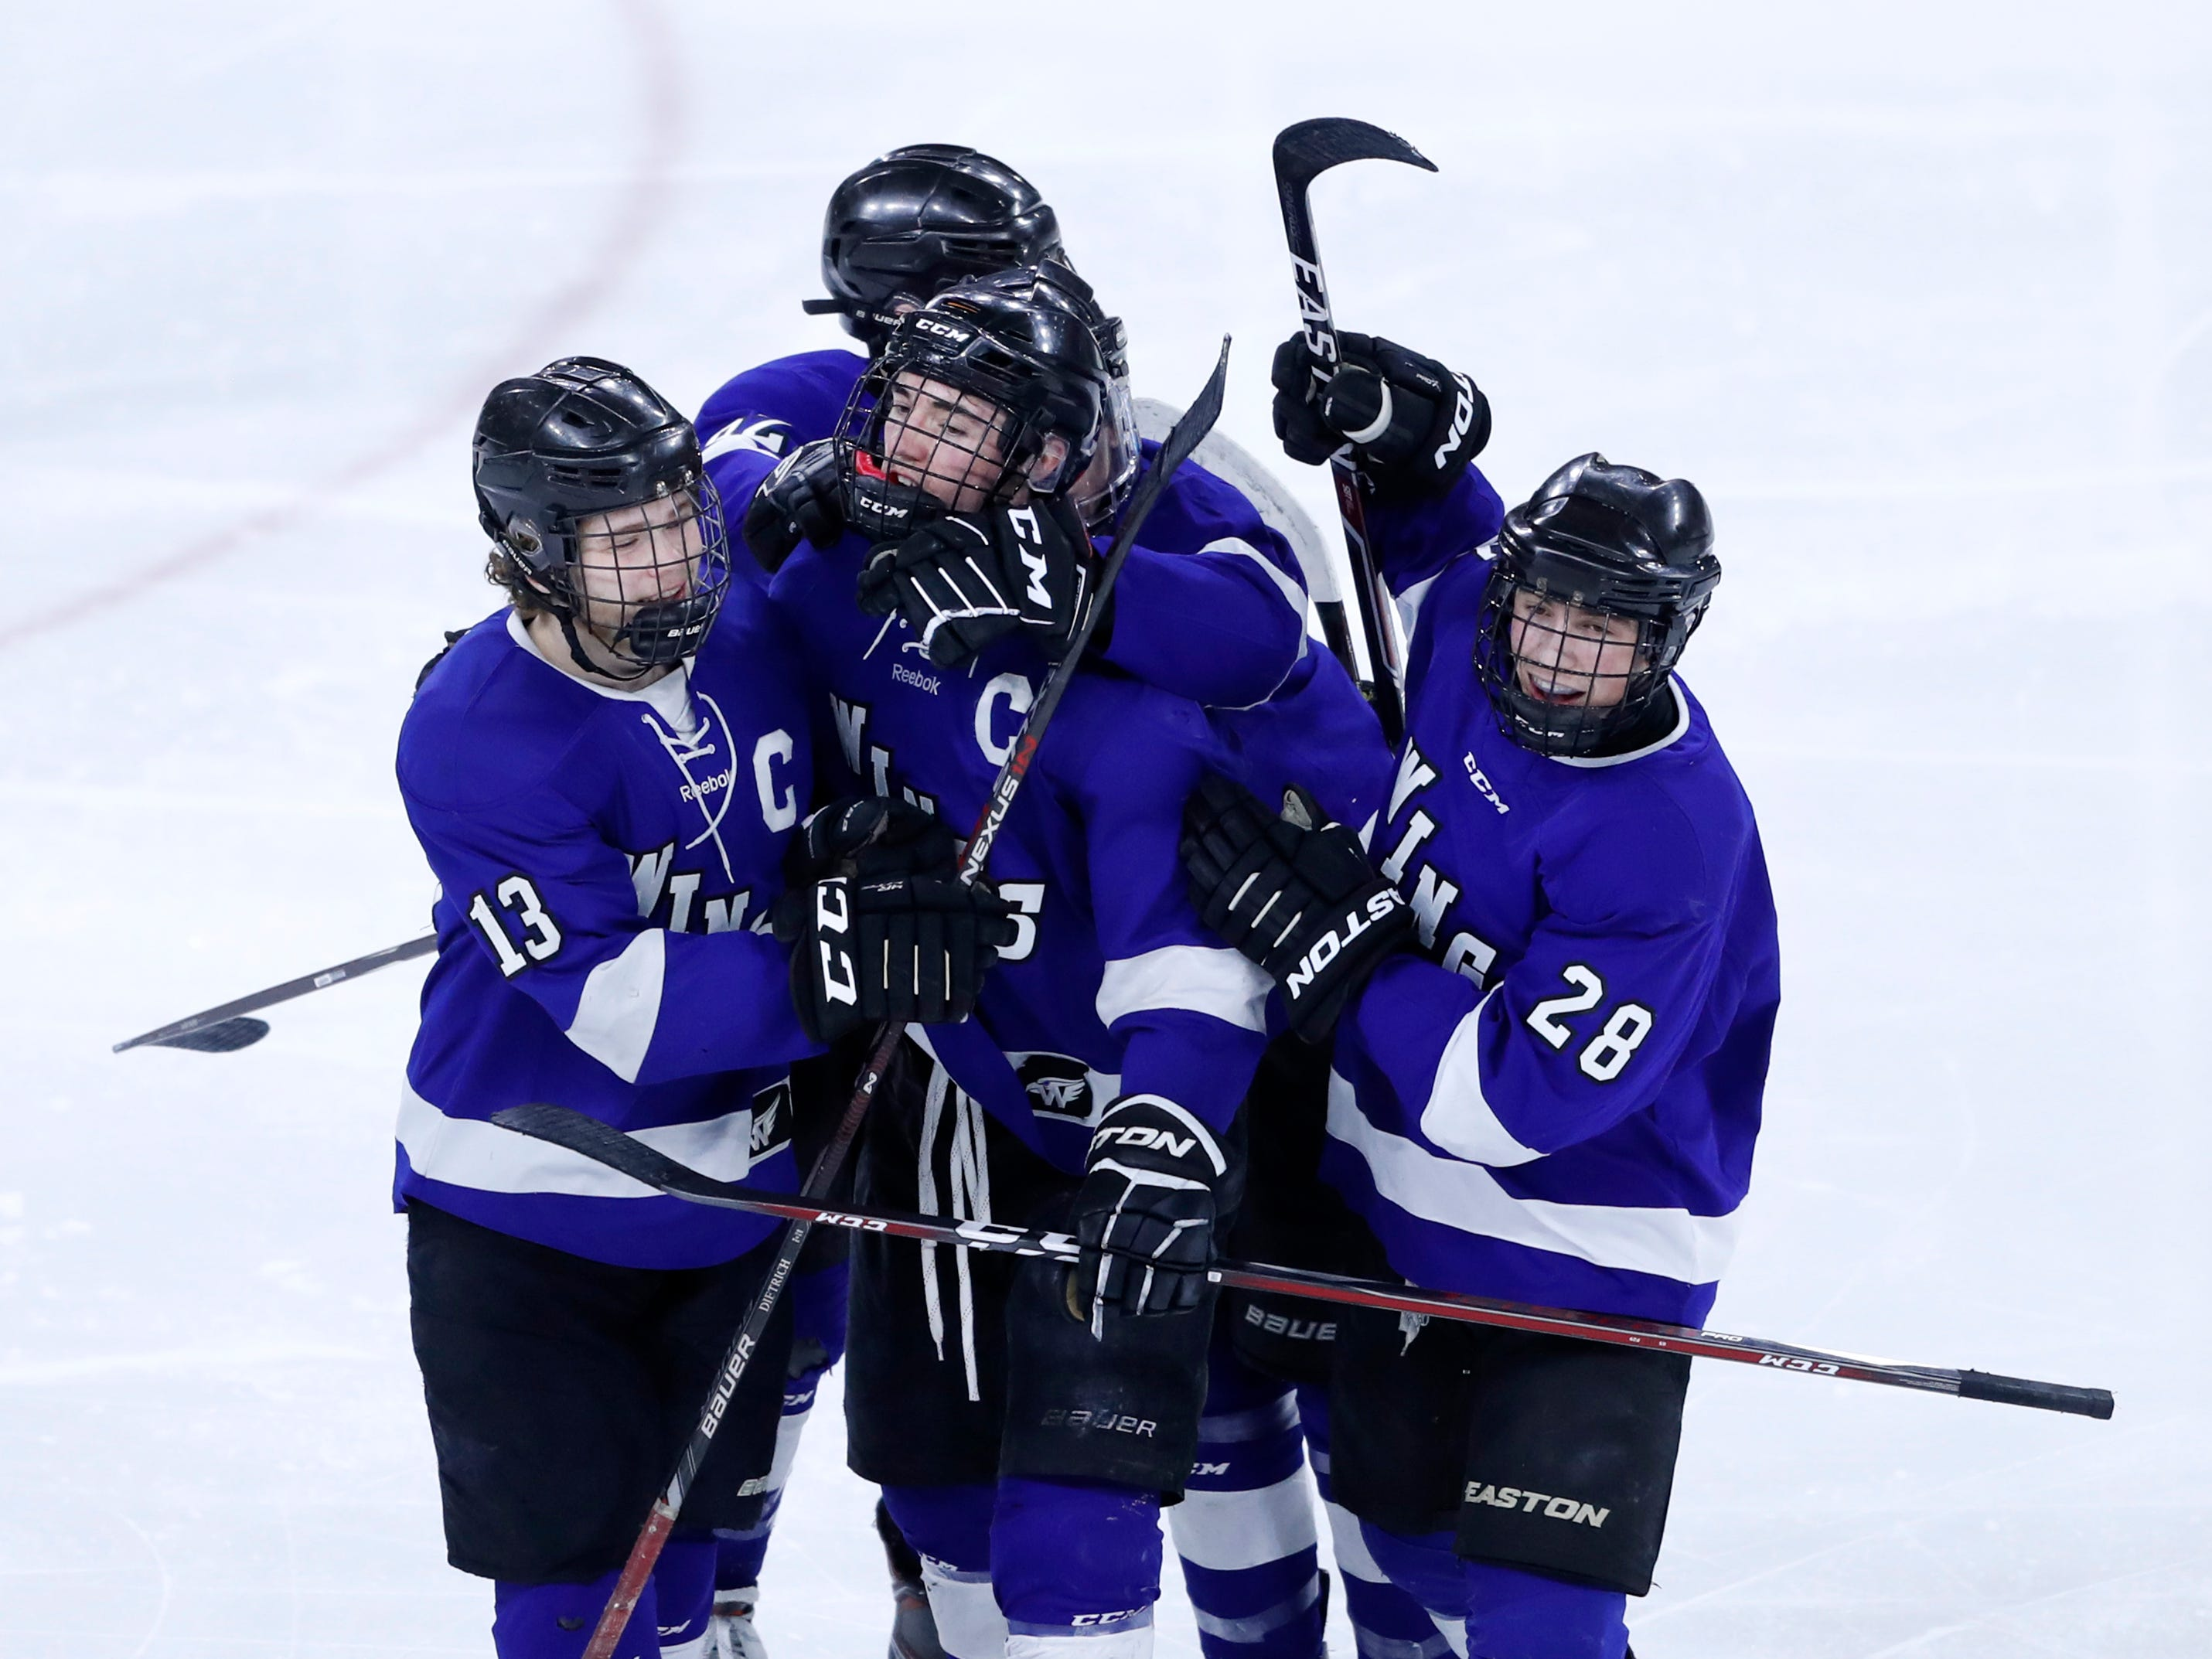 Teammates gather around Waukesha North Co-op's Chad Larsen after he scored a goal against Wausau West during the WIAA State Hockey Tournament quarterfinals Thursday, Feb. 28, 2019, at Veterans Memorial Coliseum in Madison, Wis.